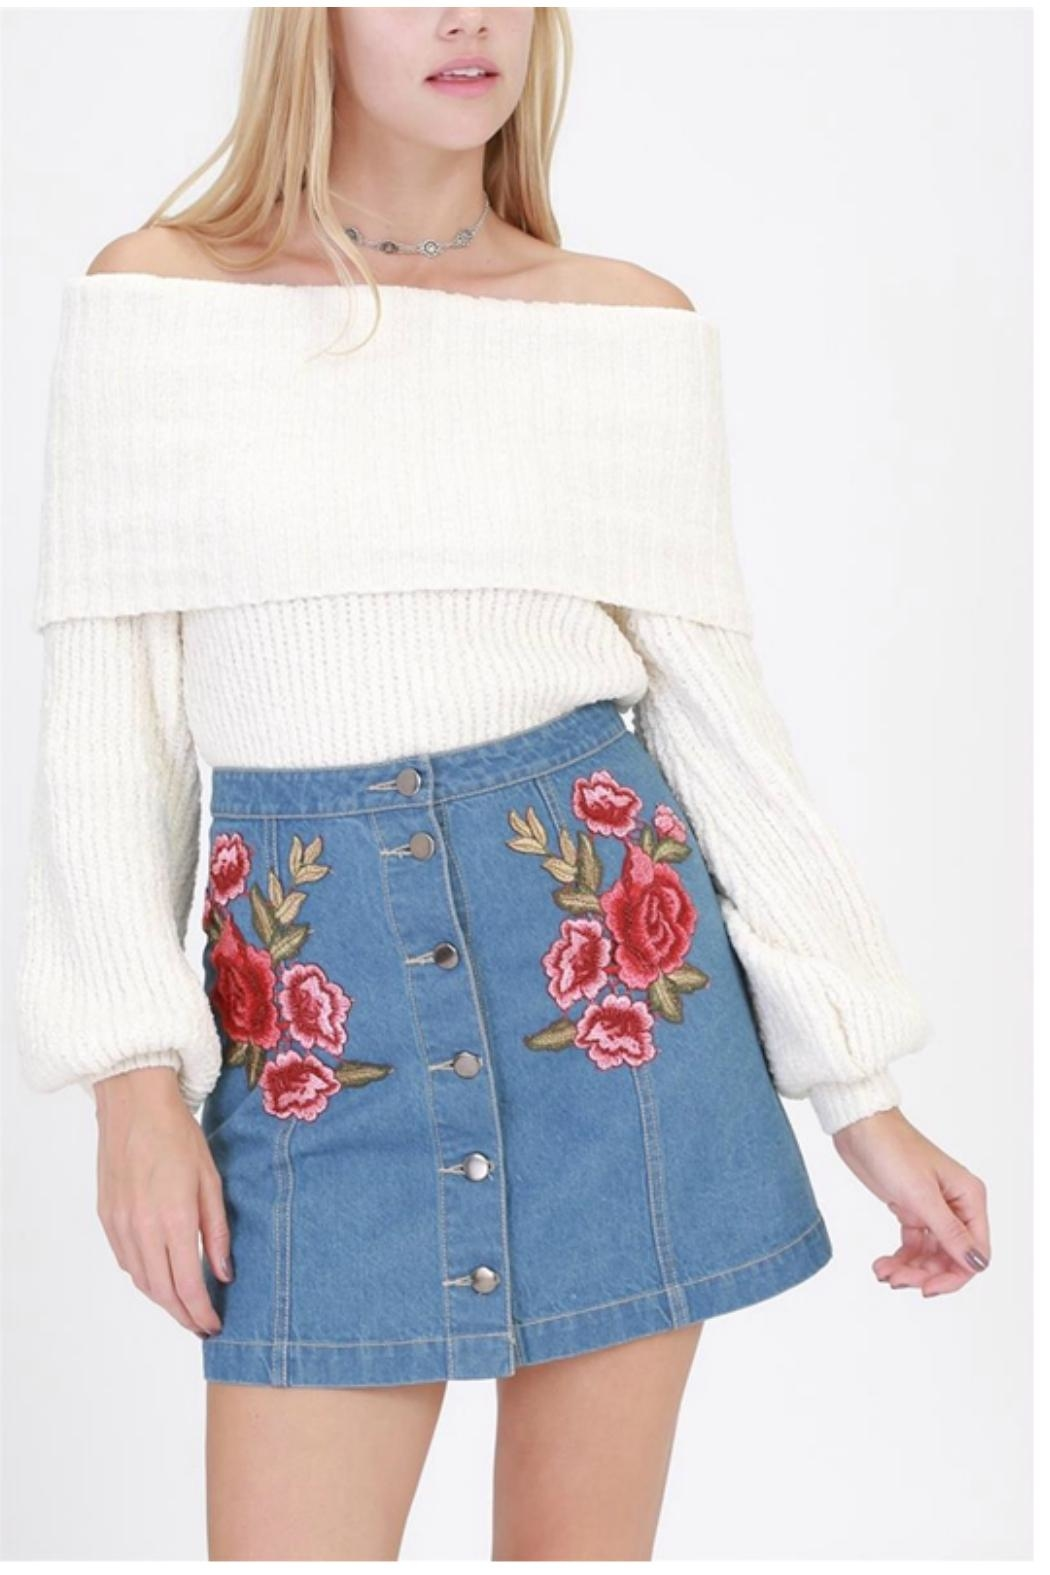 HYFVE Denim Embroidered Skirt - Front Cropped Image